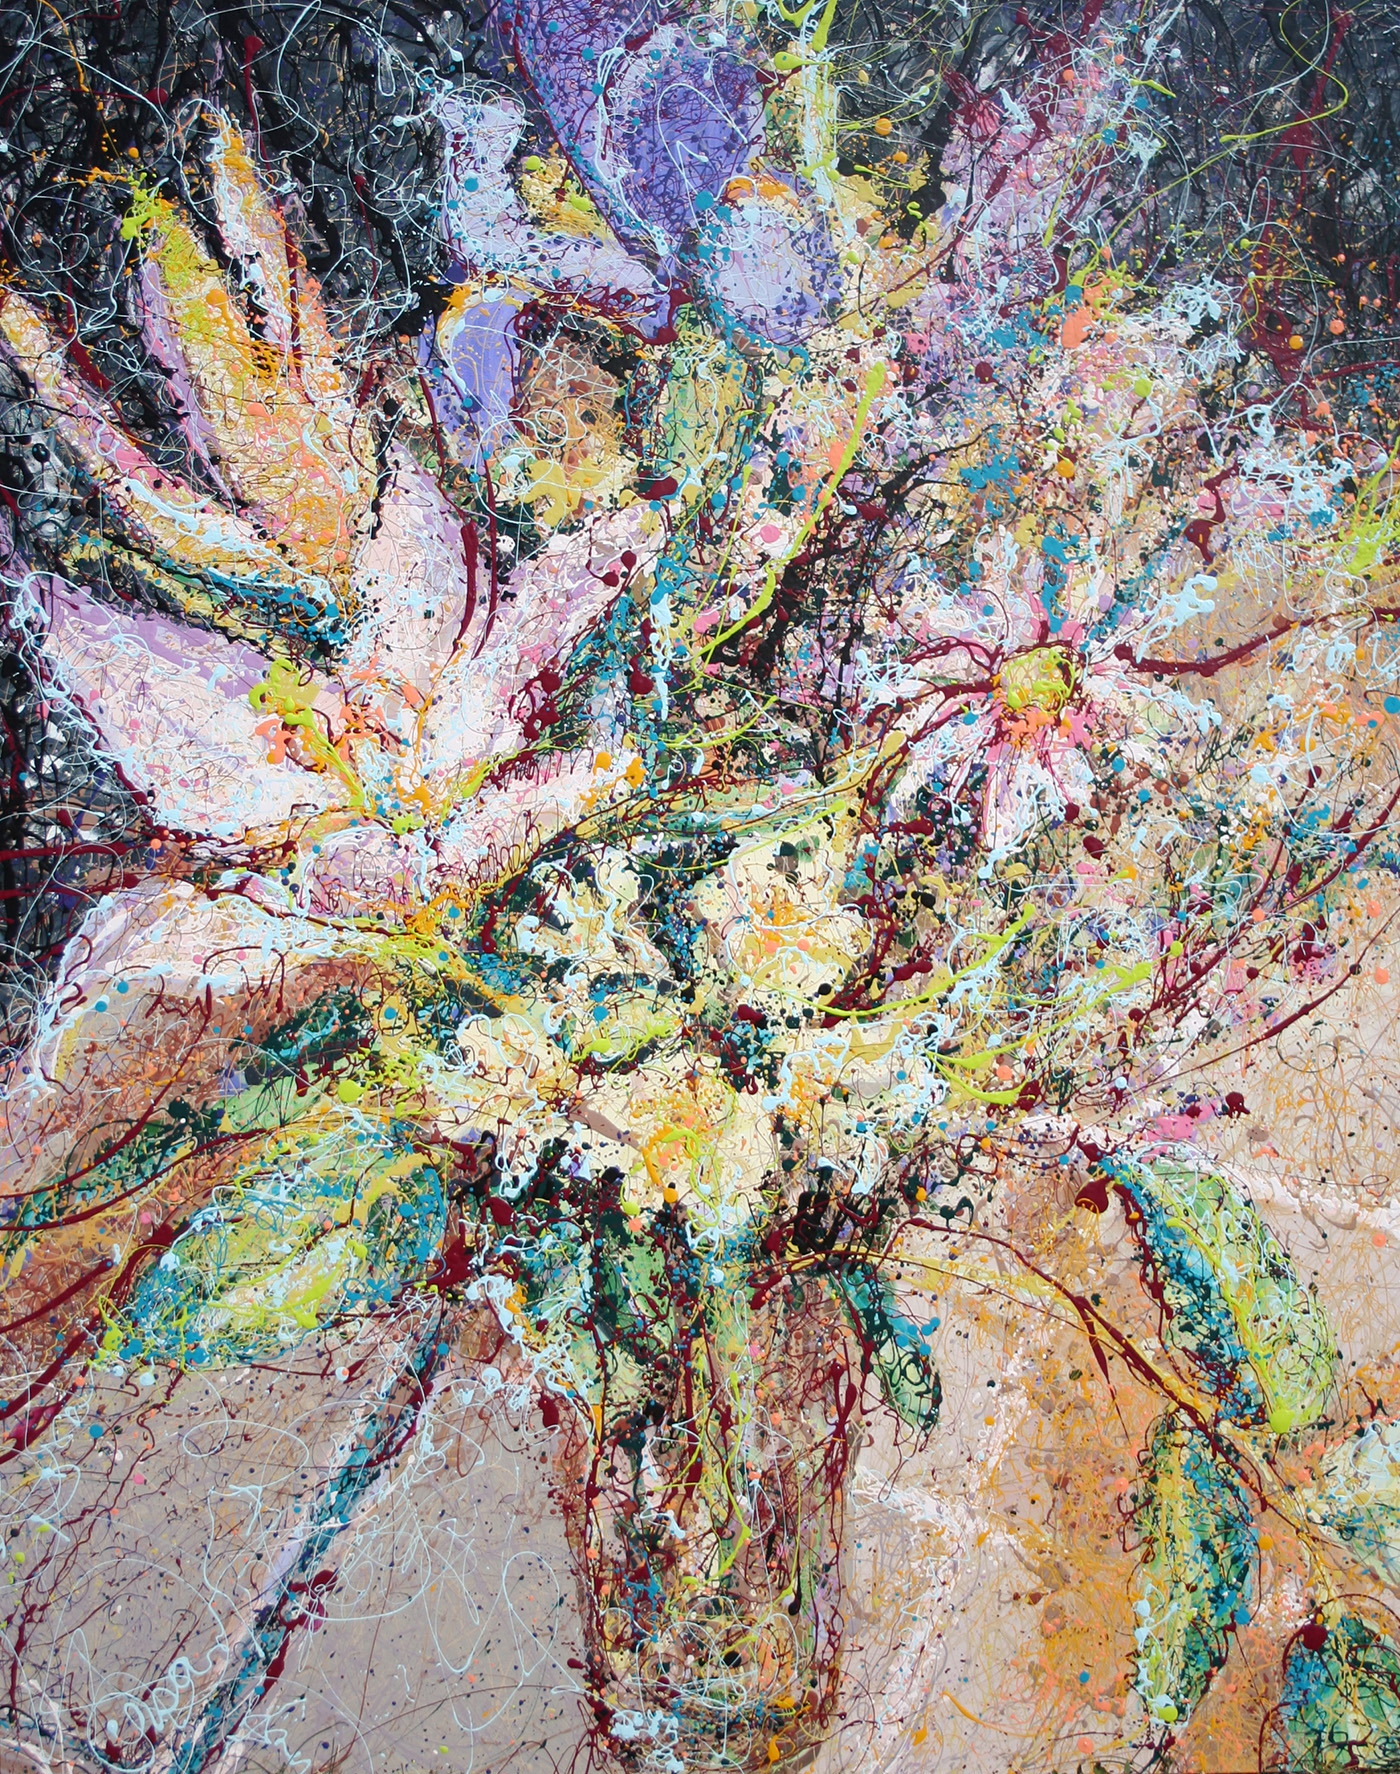 Floral Latex Enamel Painting on Gallery Wrapped Canvas by Fort Collins, Colorado Artist Lisa Cameron Russell